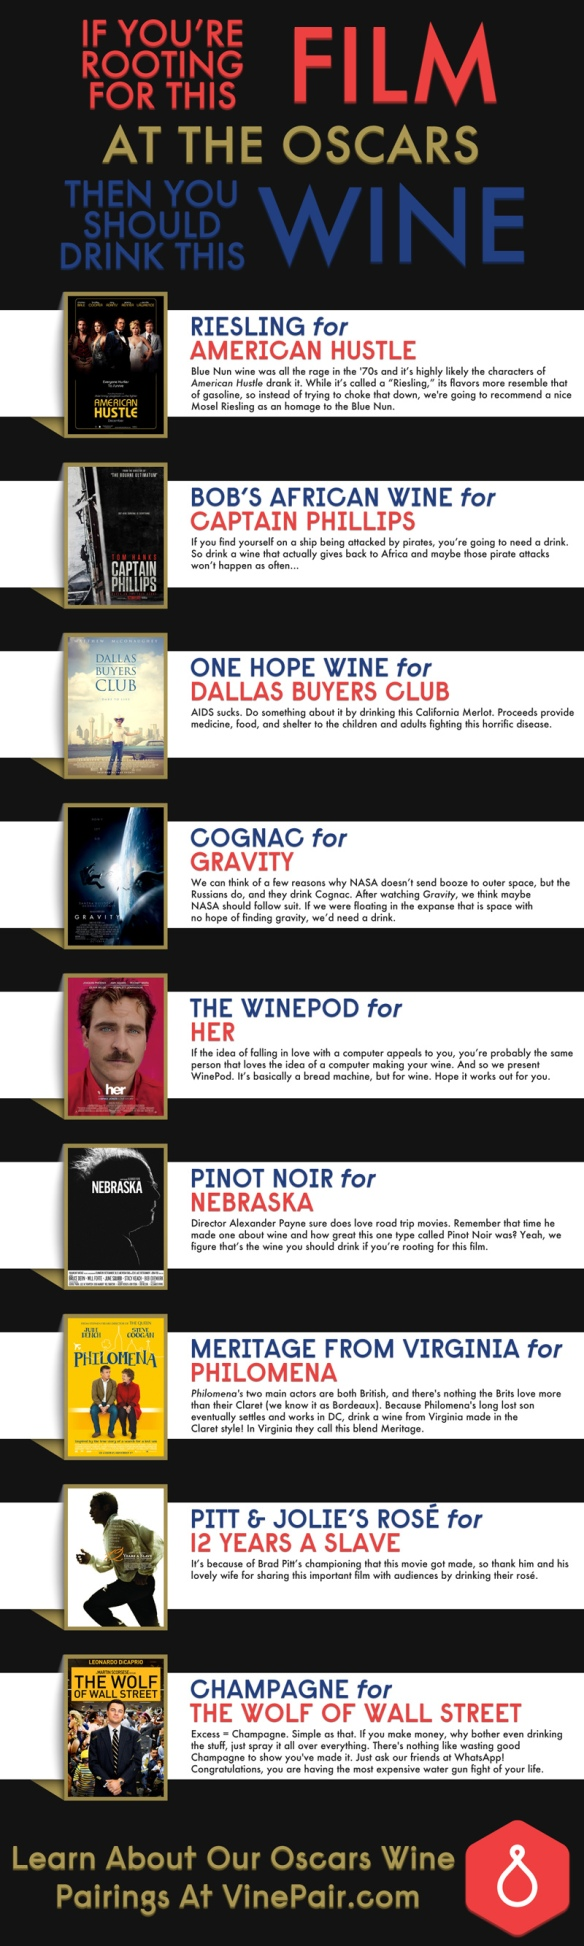 oscars-wine-pairings-preview